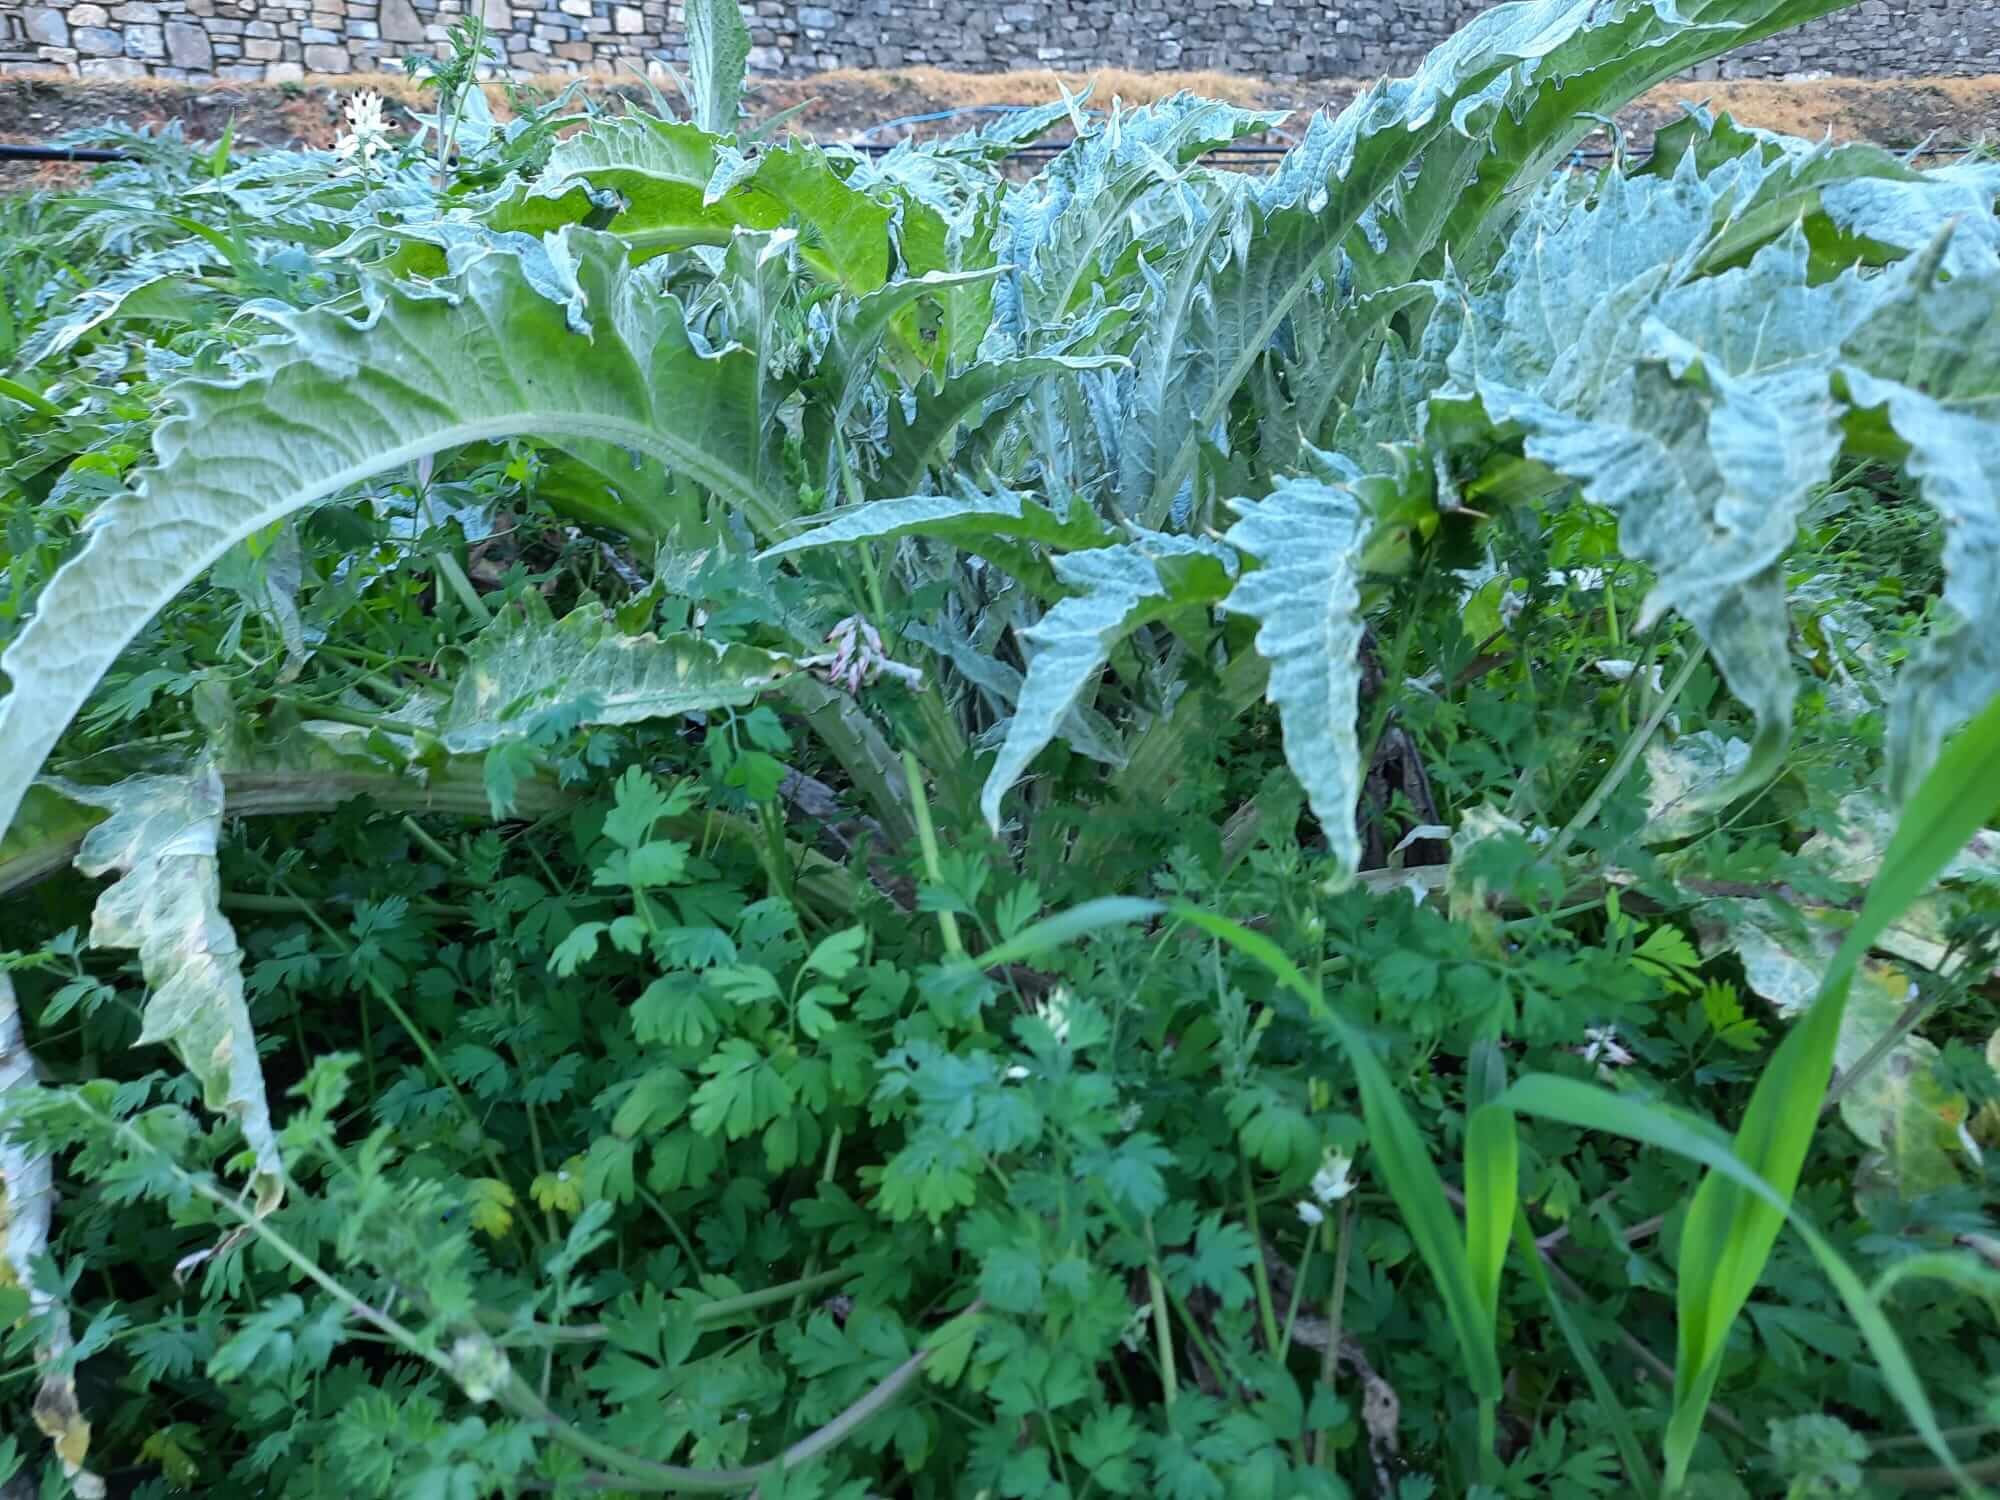 Weeds in the artichoke field